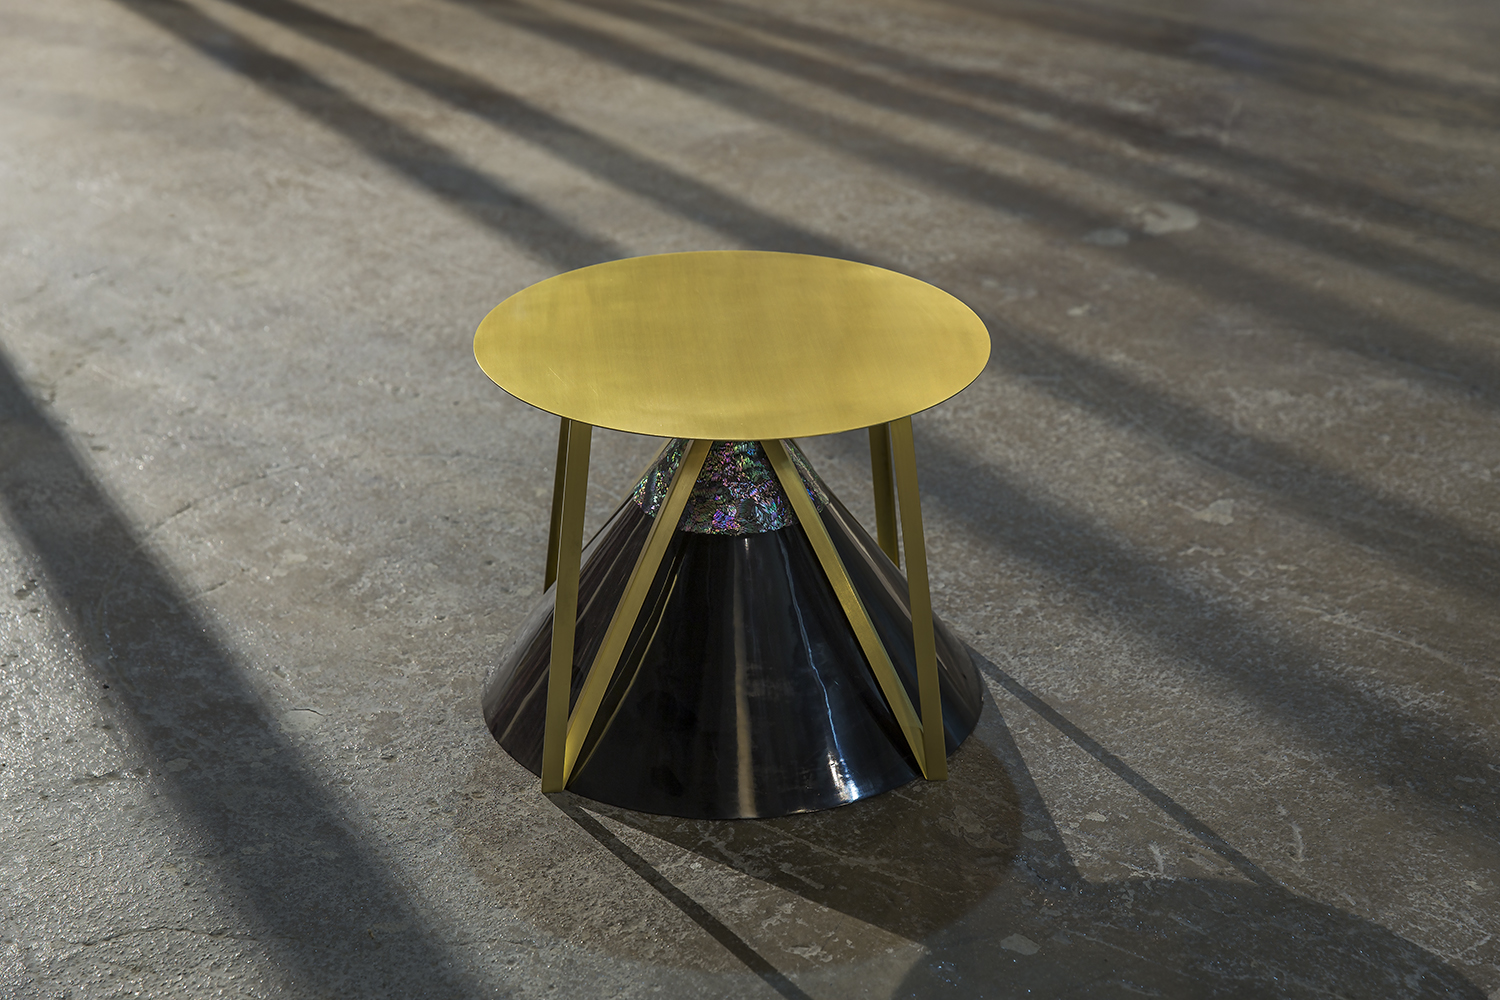 tea table 1, 2015